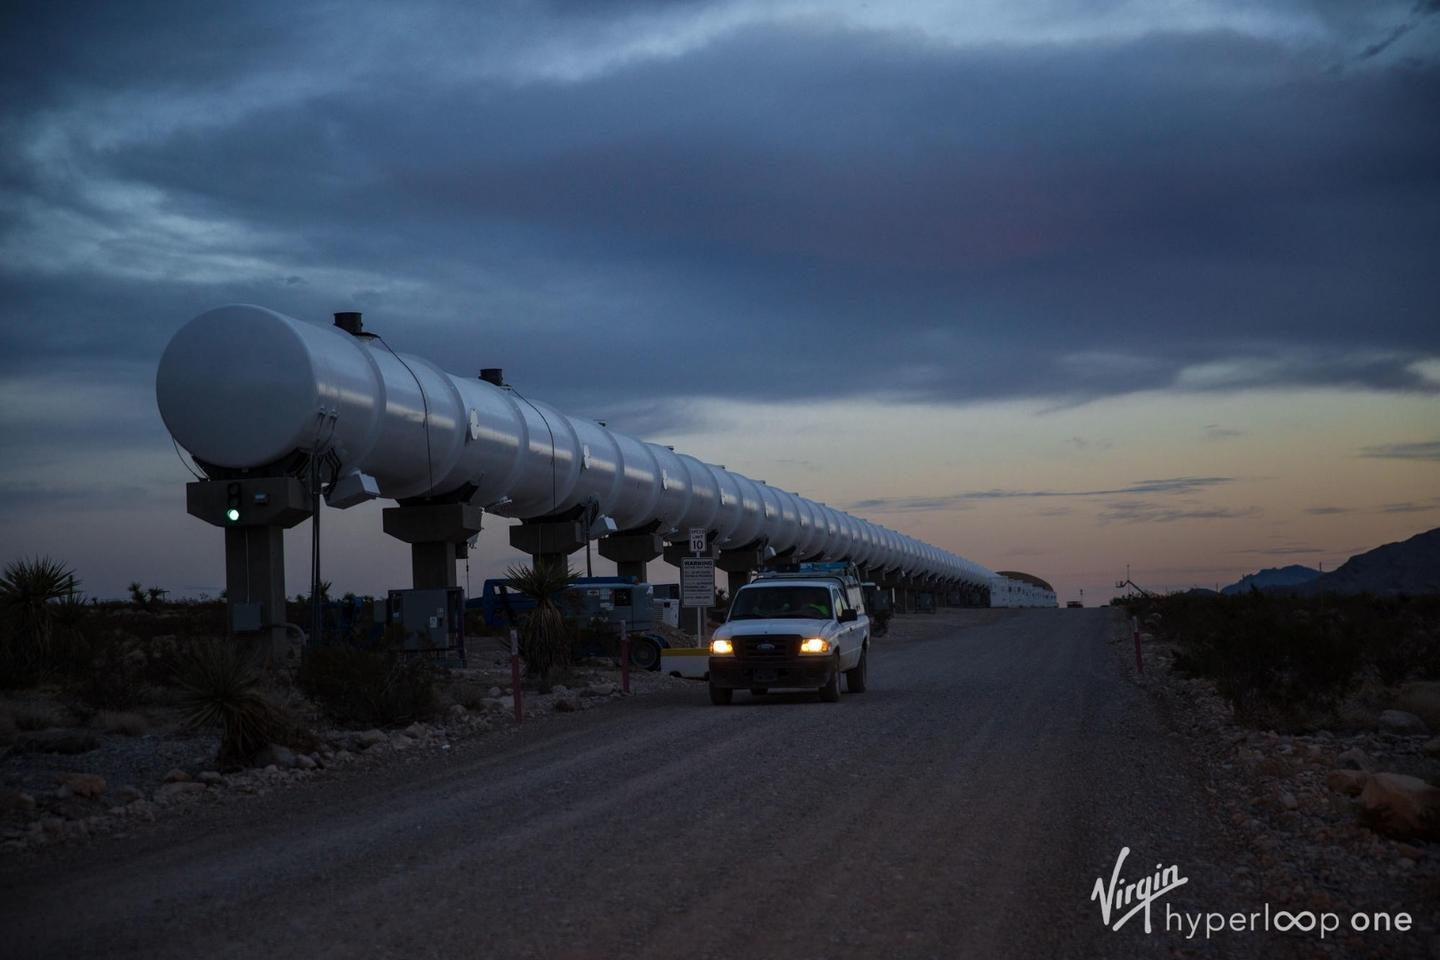 A fully developed Hyperloop would see passenger and cargo pods travel through near-vacuum tubes at around 700 mph (1,126 km/h)